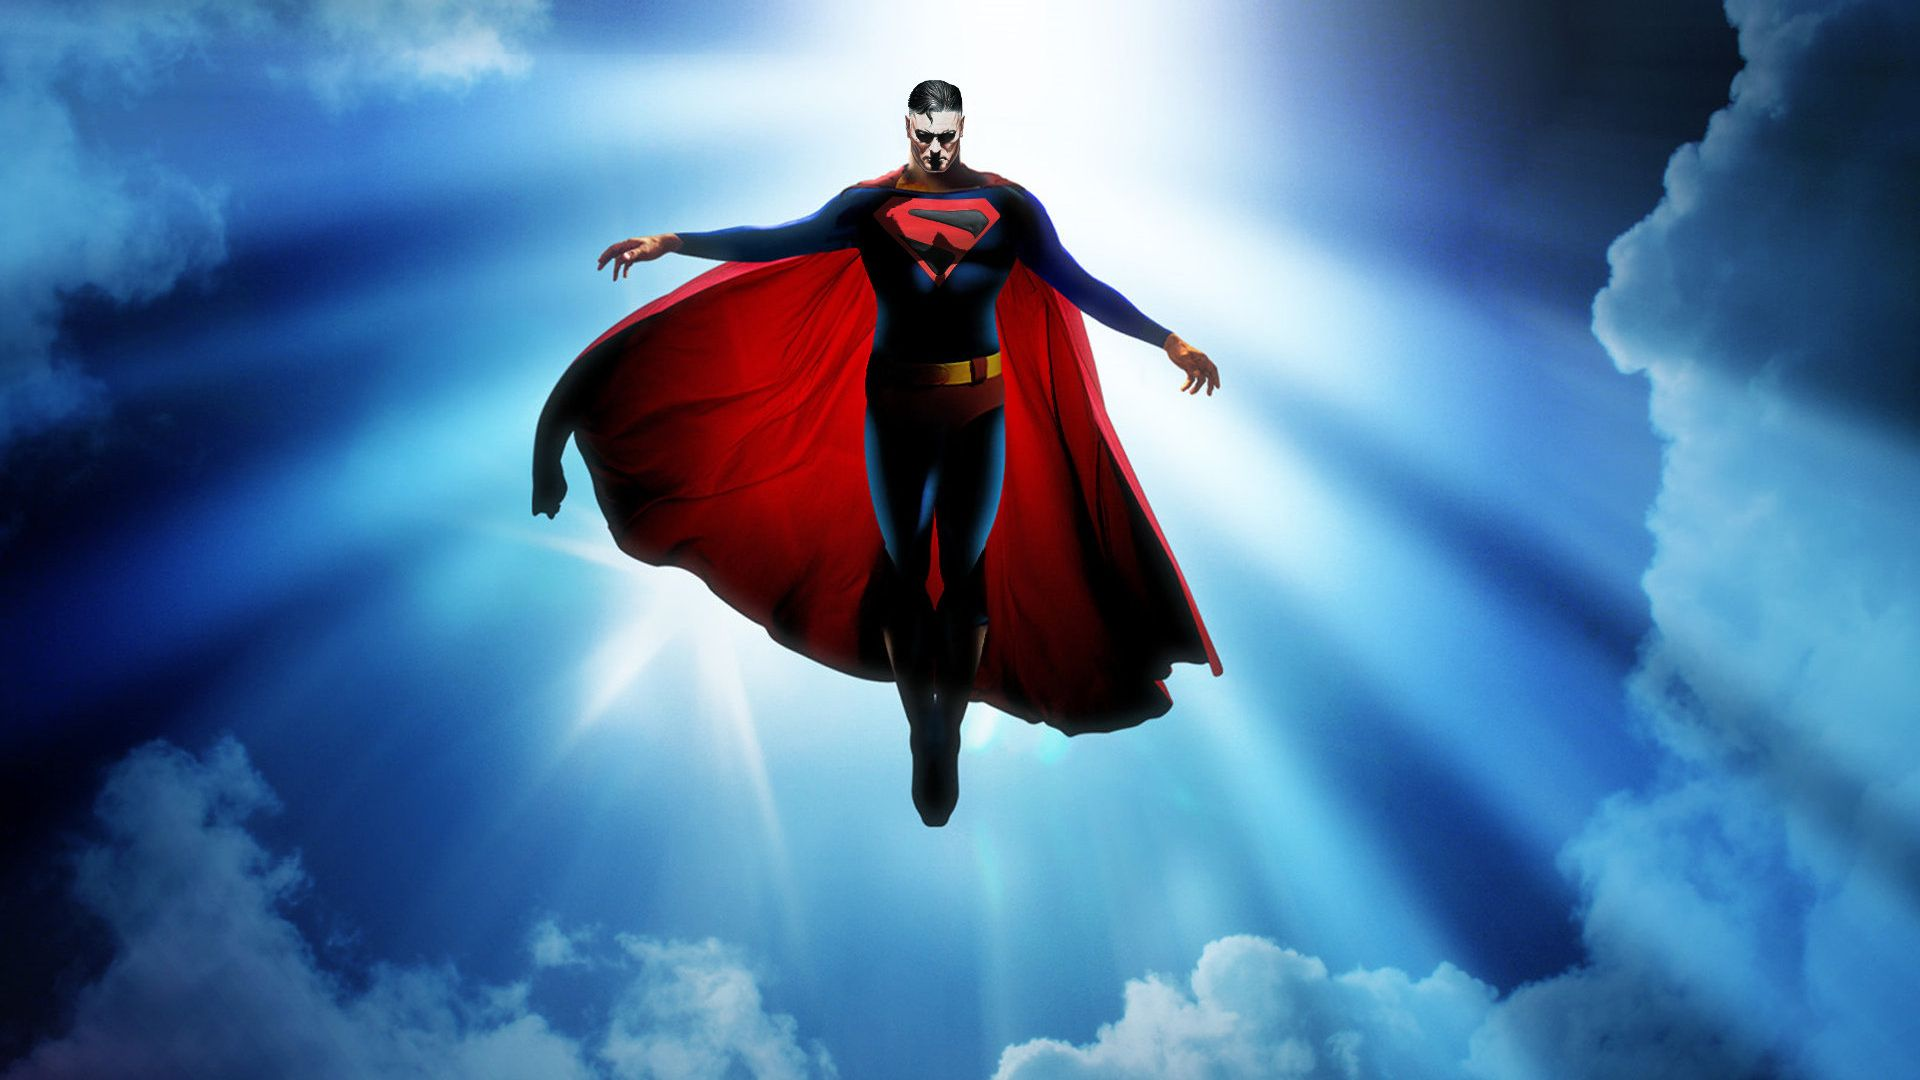 superman wallpaper hd, superman hd wallpaper 1920x1080